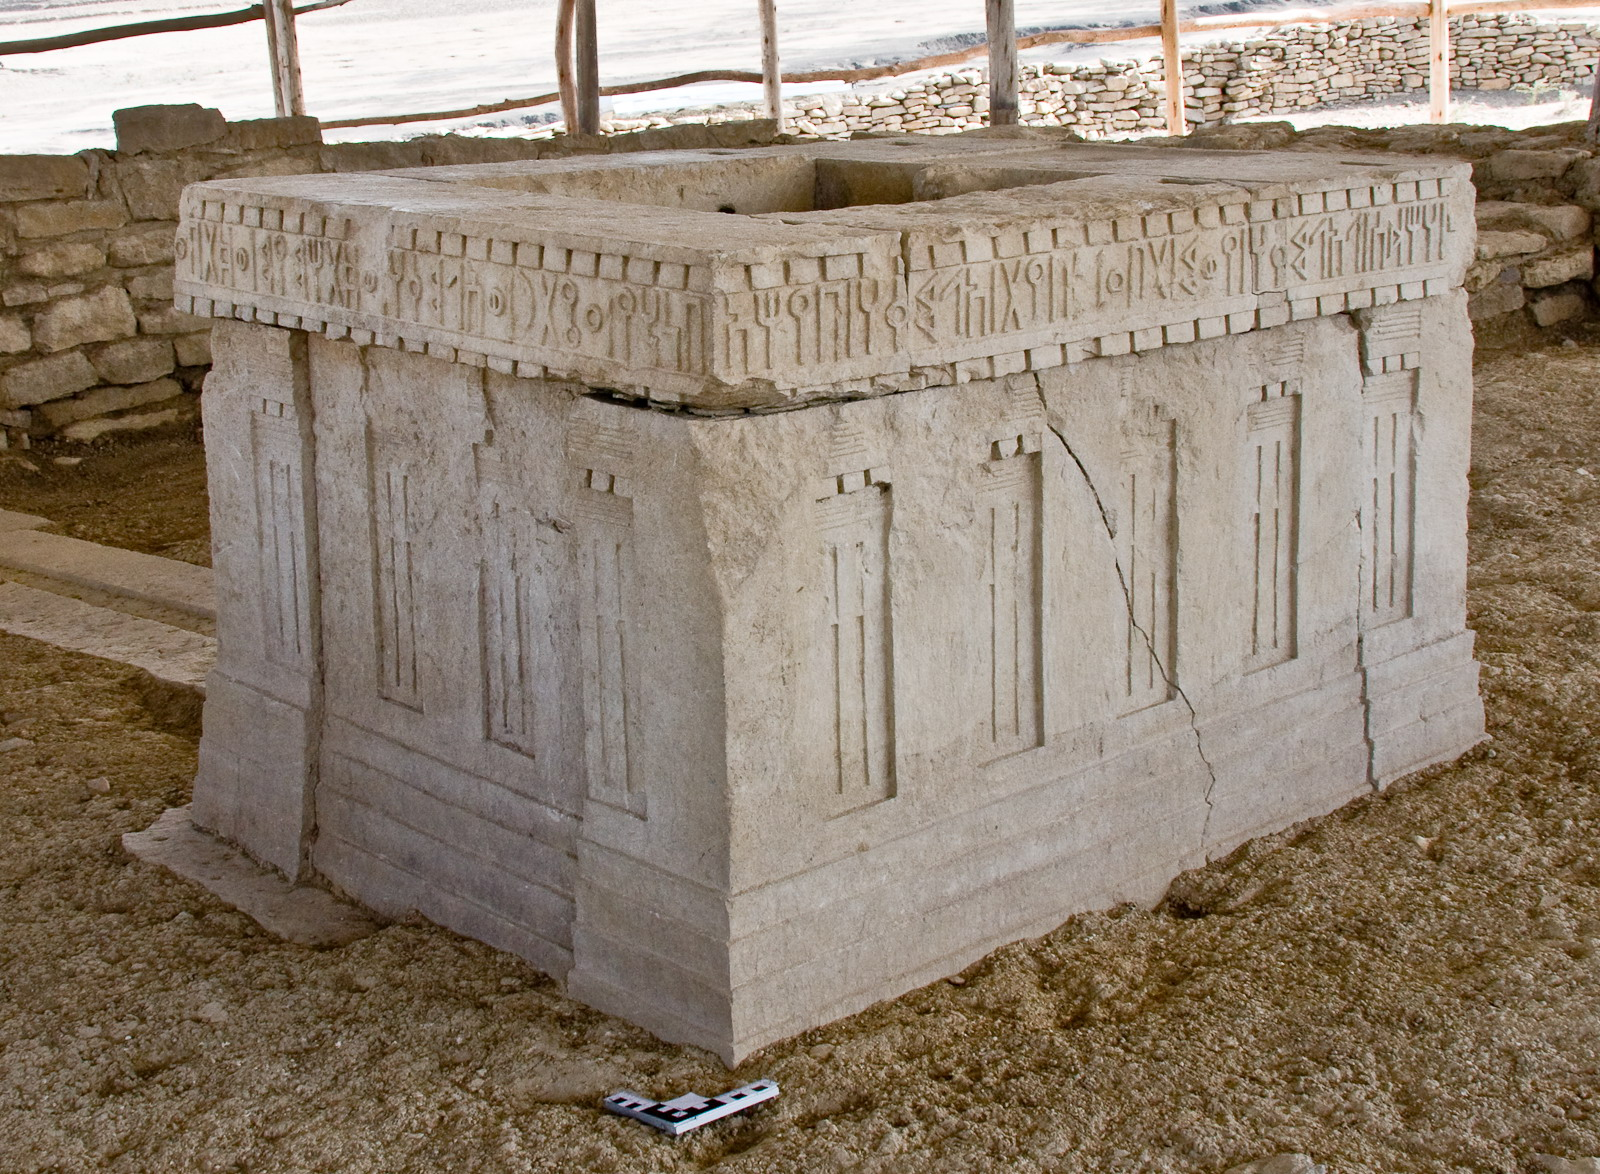 RE: Black africans never carved anything in stone